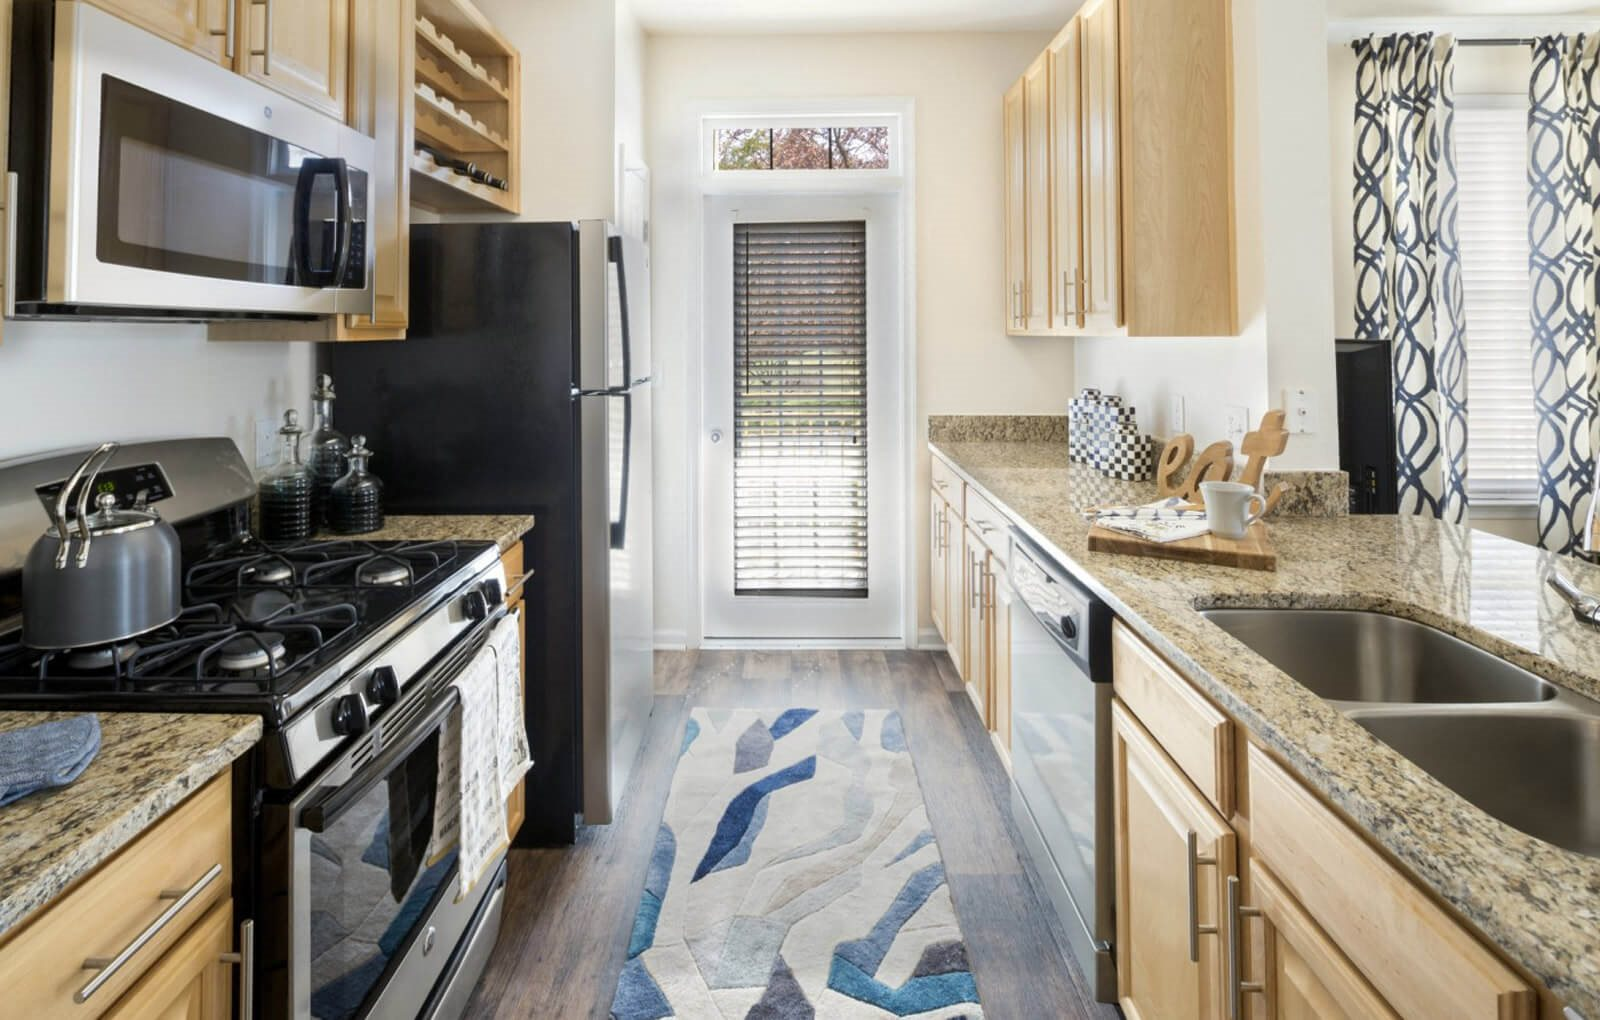 Beautifully upgraded kitchens with stainless steel appliances at Westwind Farms Apartments in Ashburn, VA